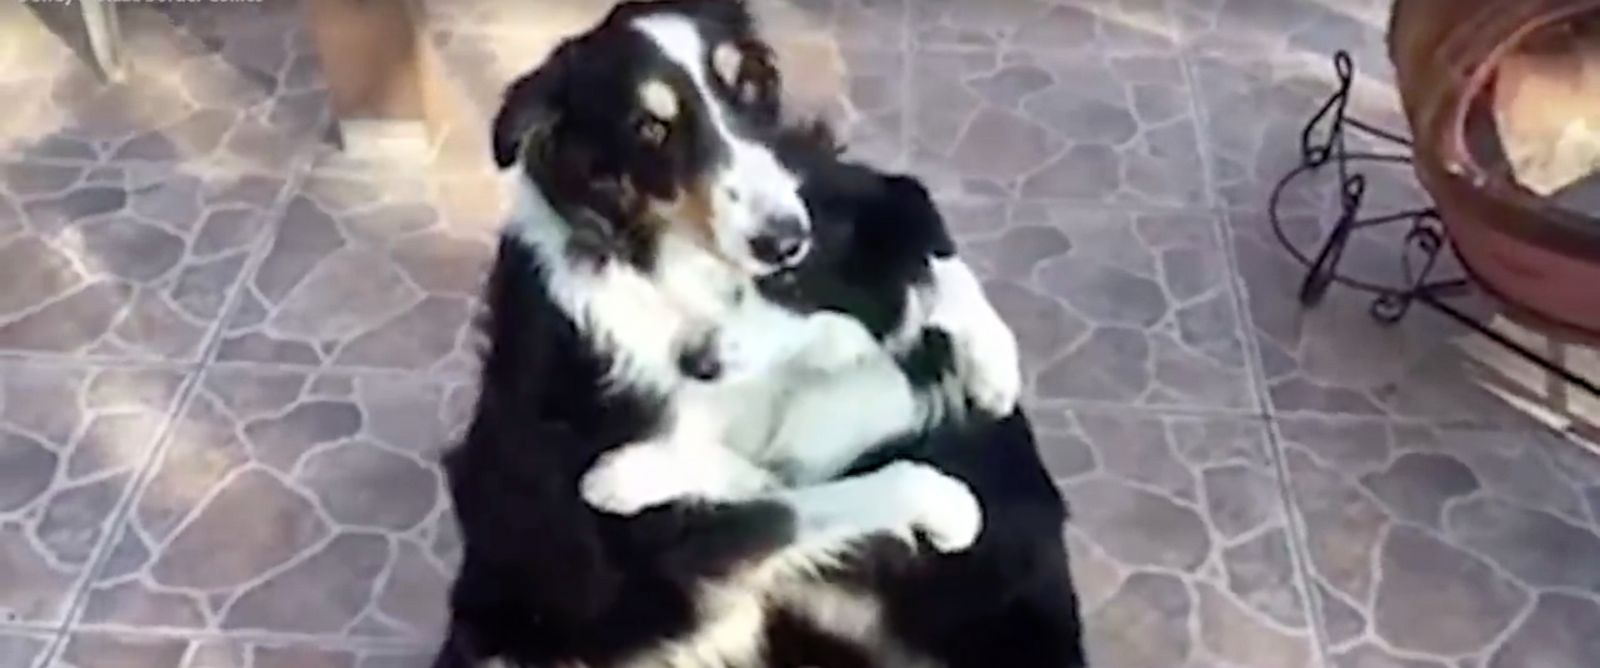 PHOTO:Dewey and Blaze the Border Collies show off their adorable friendship in a video that was posted to Facebook on Feb. 2, 2016.